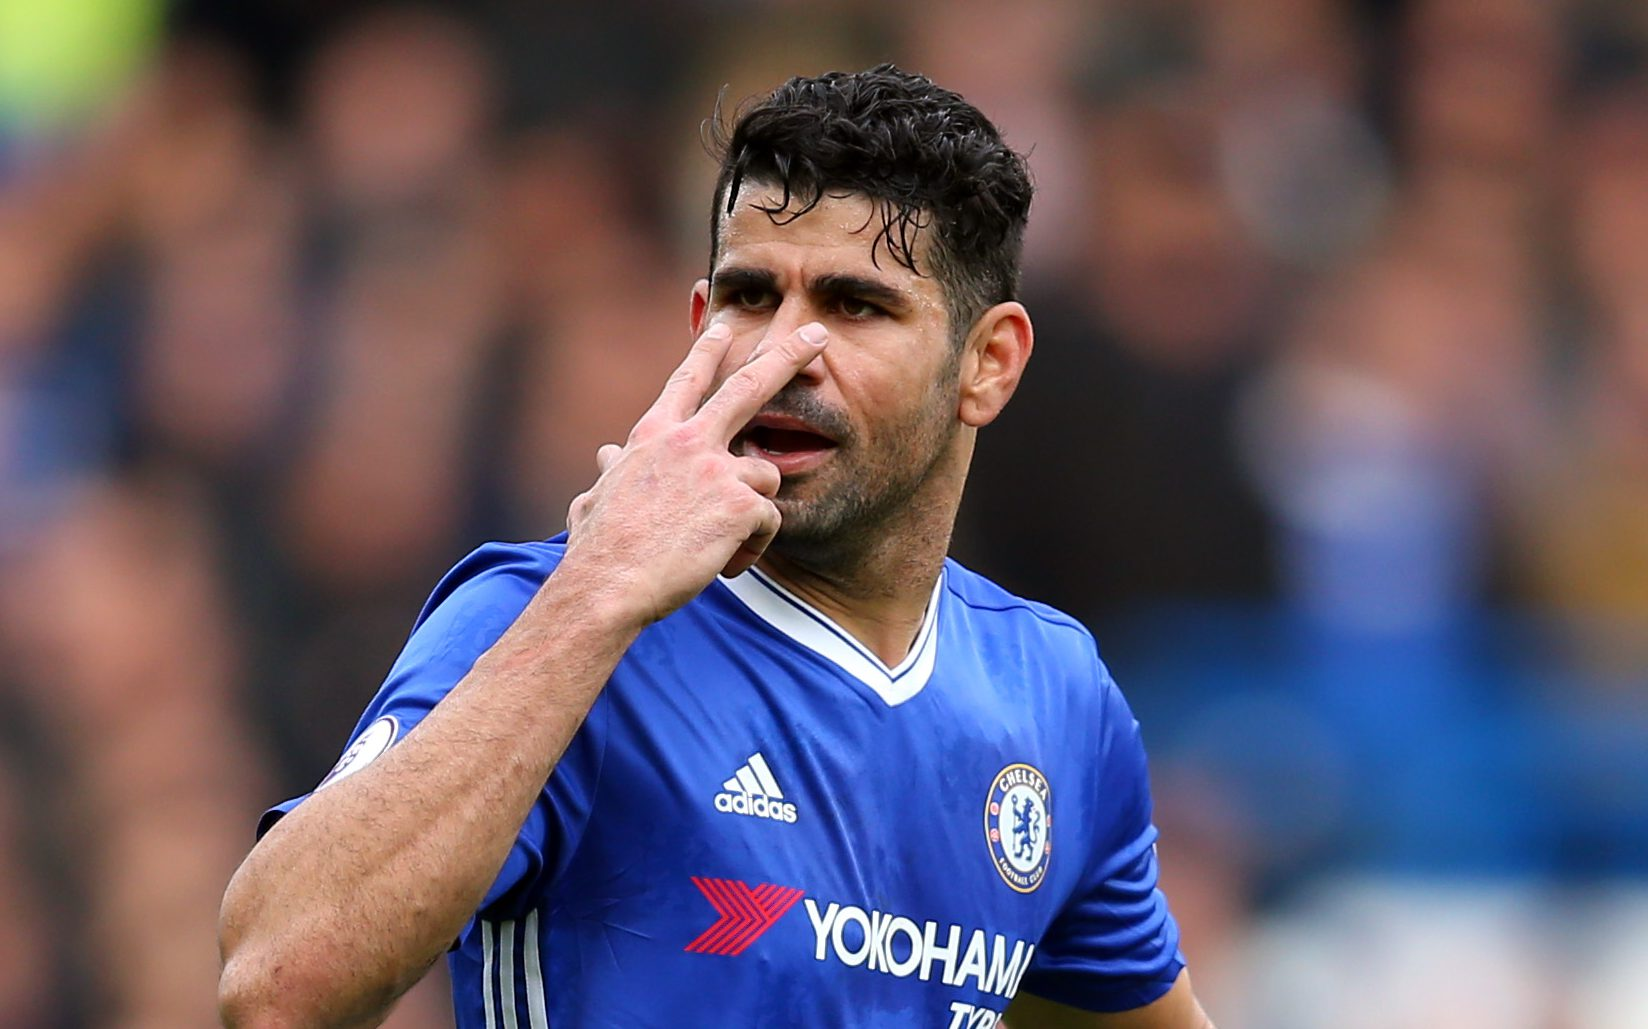 Antonio Conte explains why he dropped Eden Hazard and Diego Costa vs Tottenham